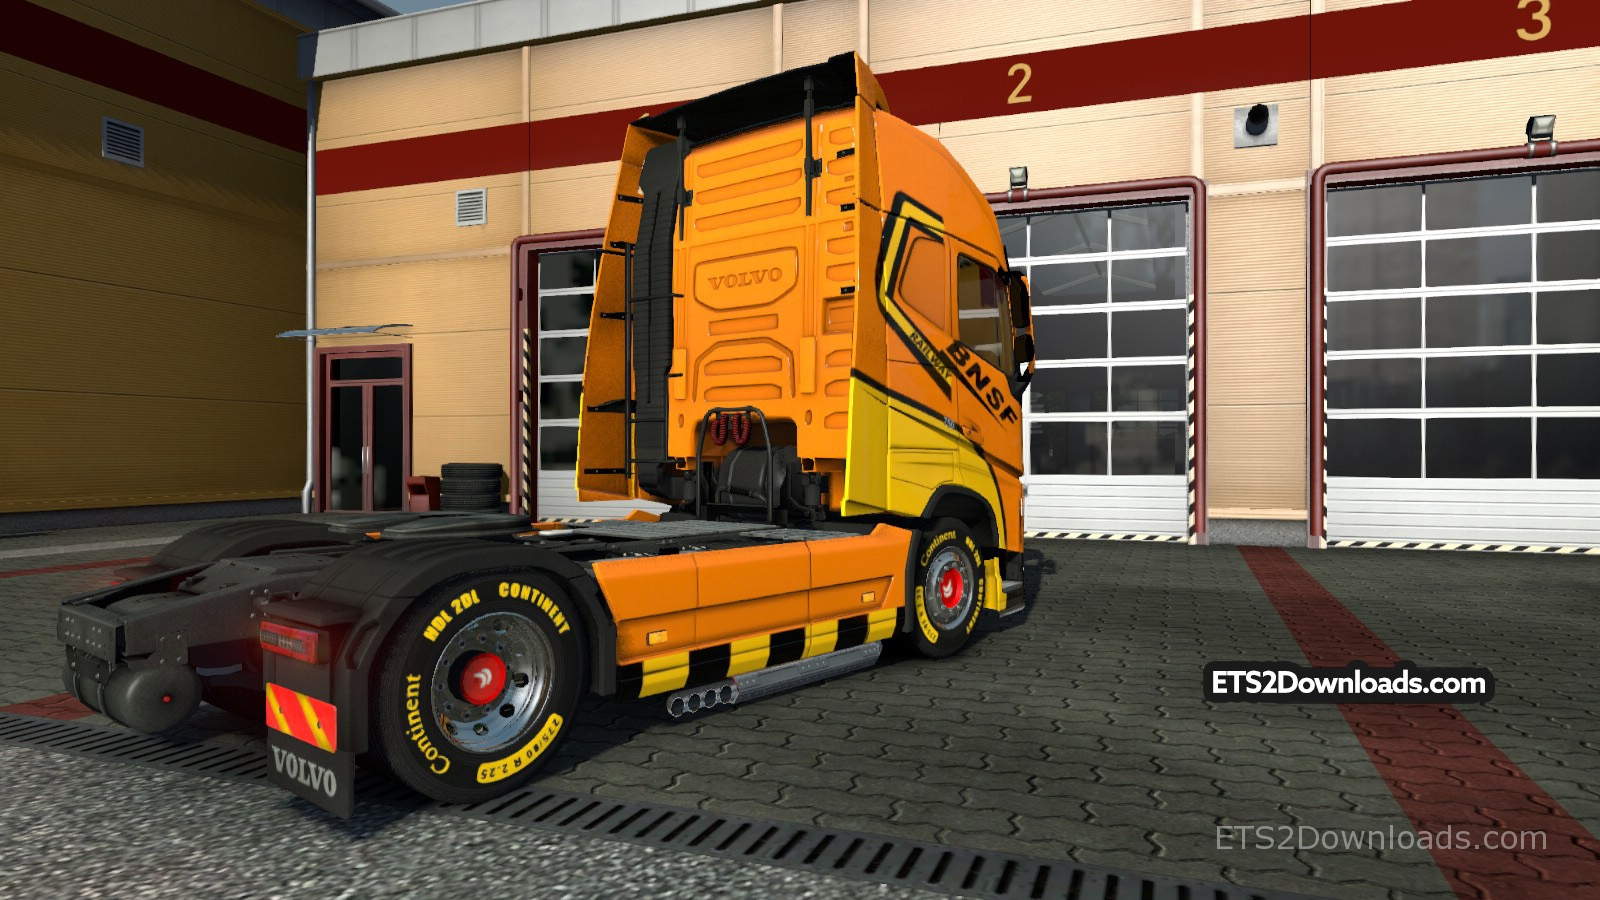 bnsf-skin-for-volvo-fh-2012-1